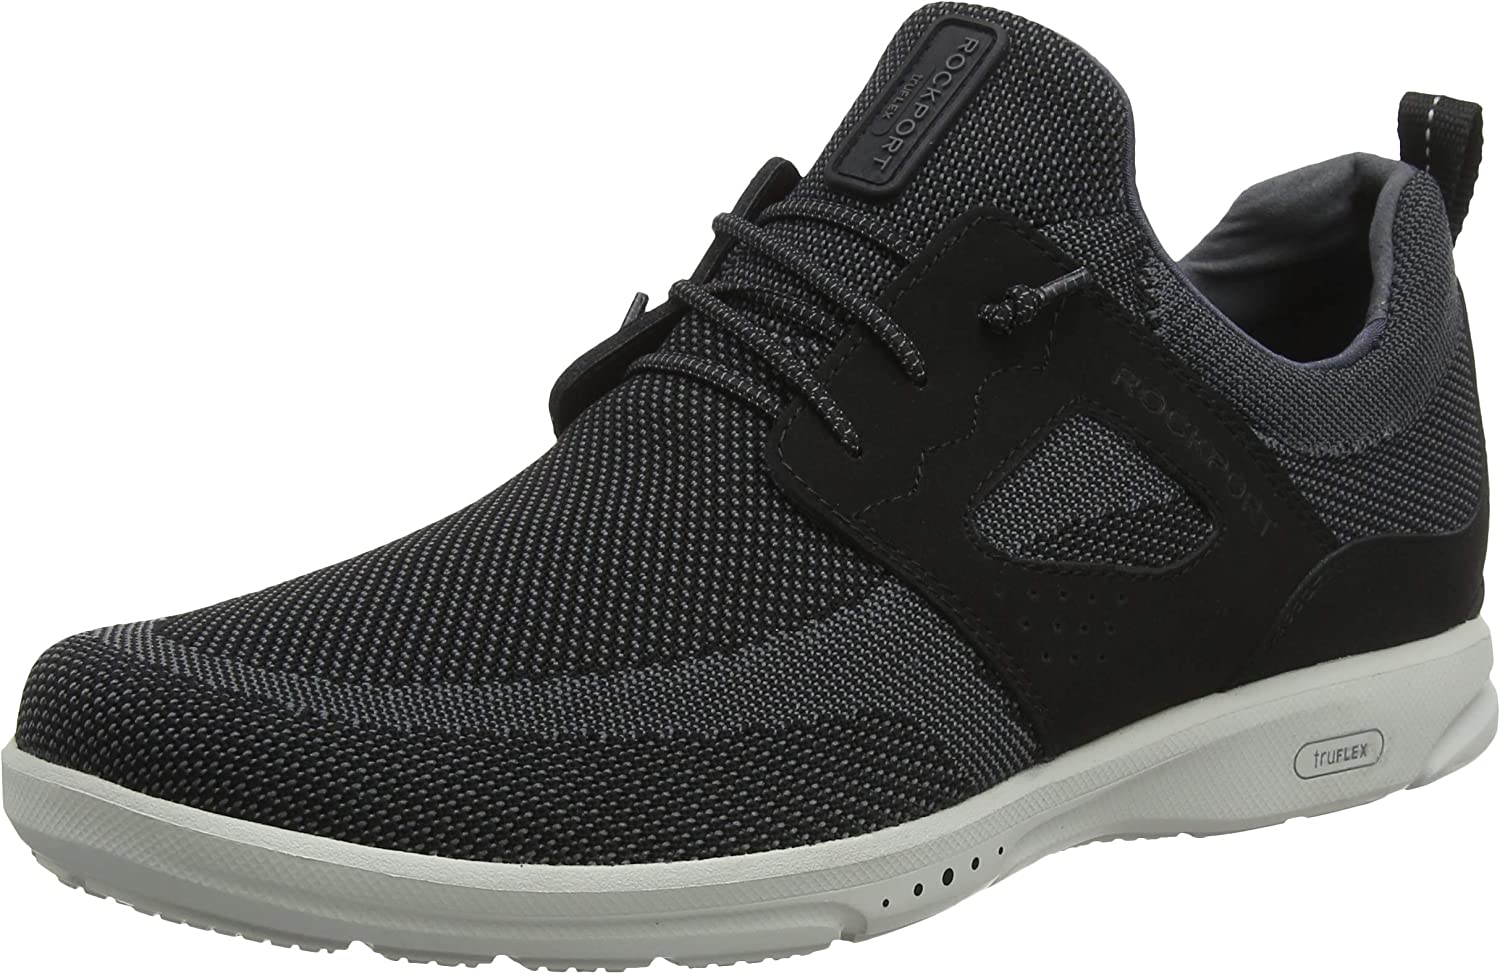 Rockport Men's Truflex Knit Bungee Trainers